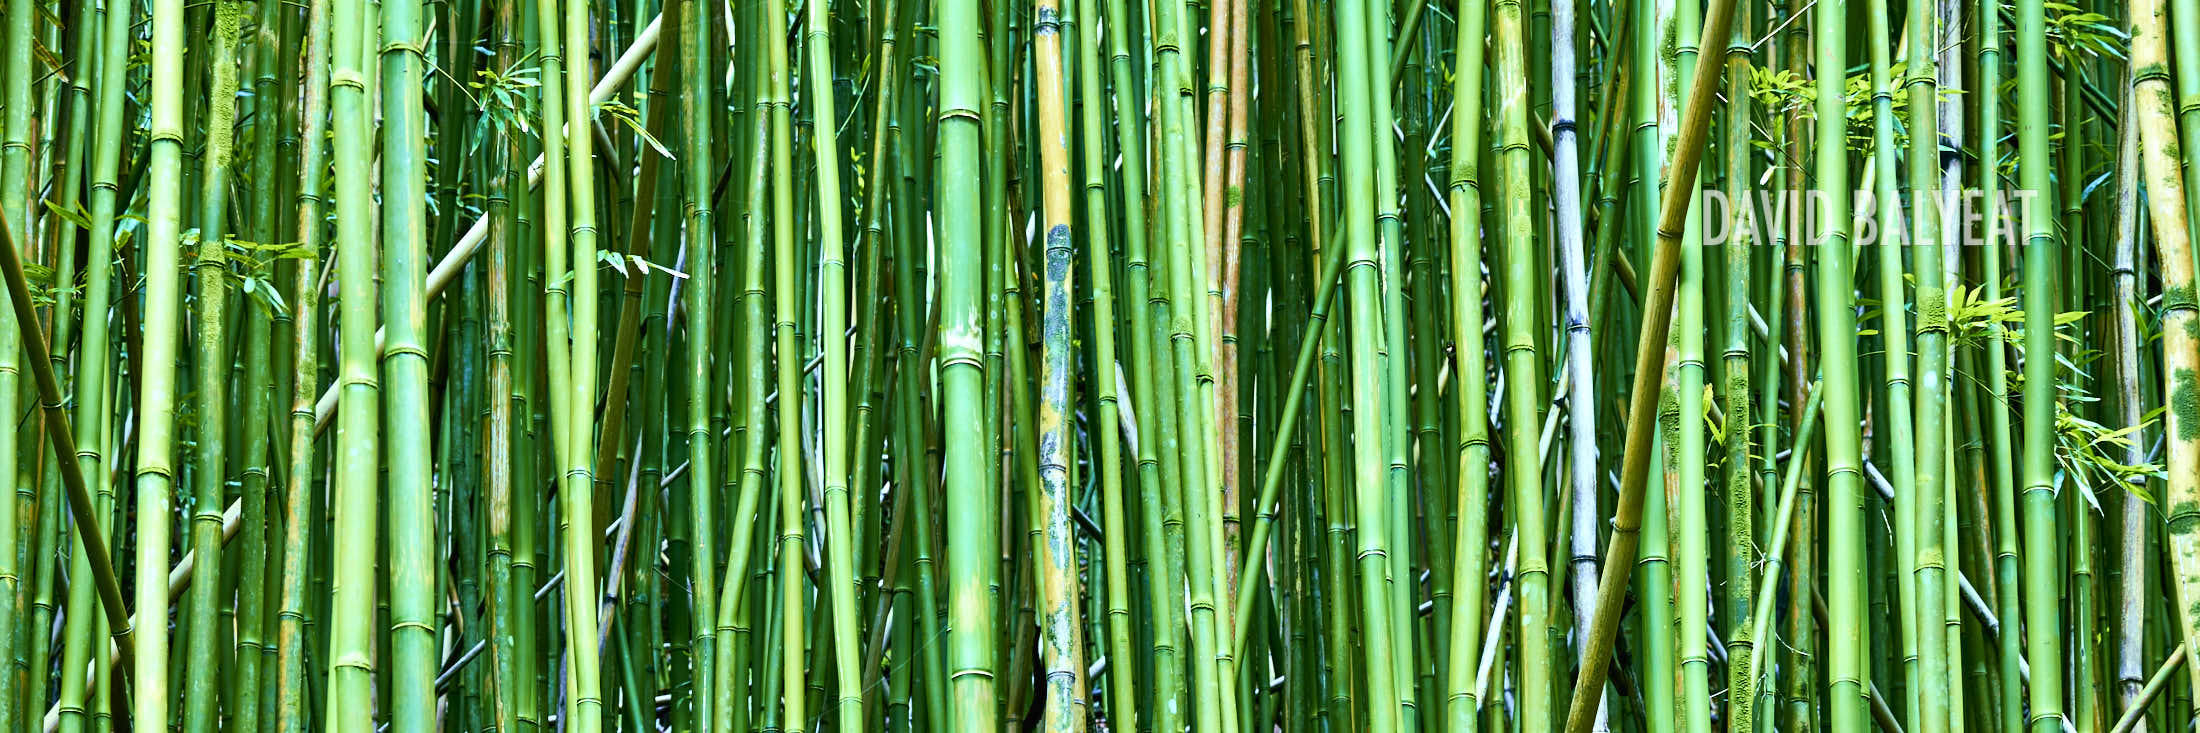 bamboo grove panoramic oahu Hawaii high-defintion HD professional landscape photography